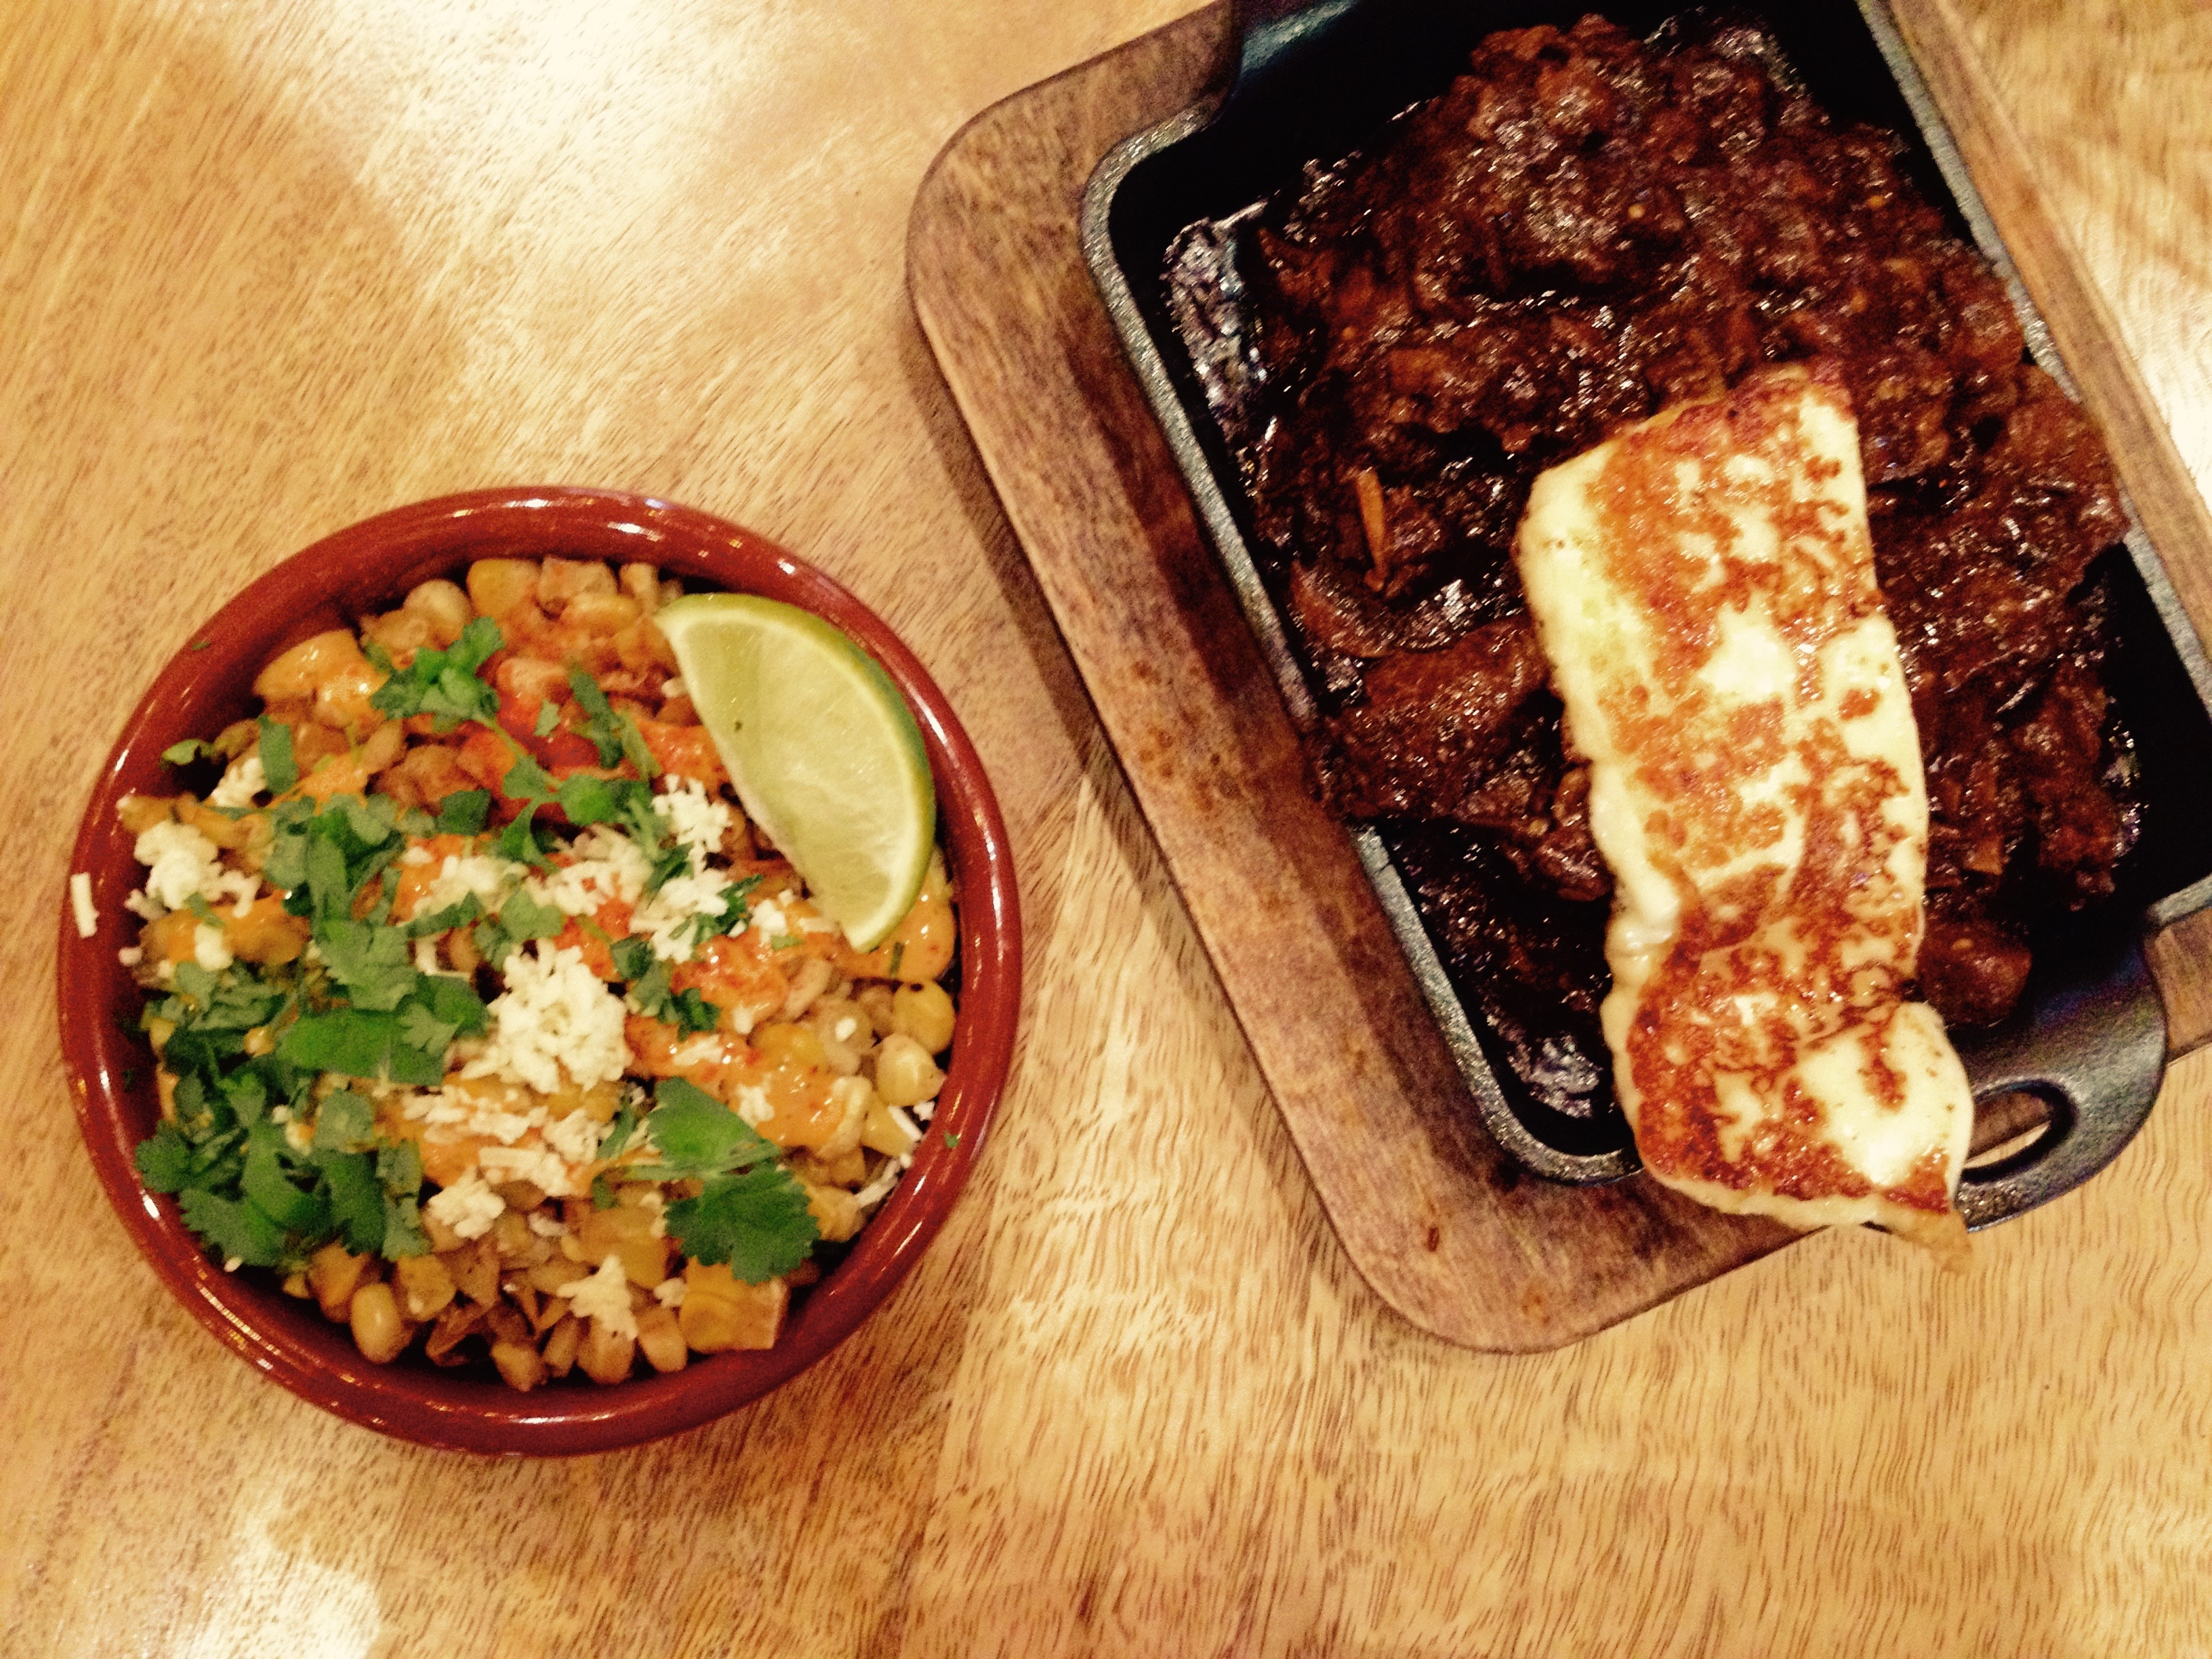 Rib-eye with pasilla chile sauce, grilled cheese and esquites.